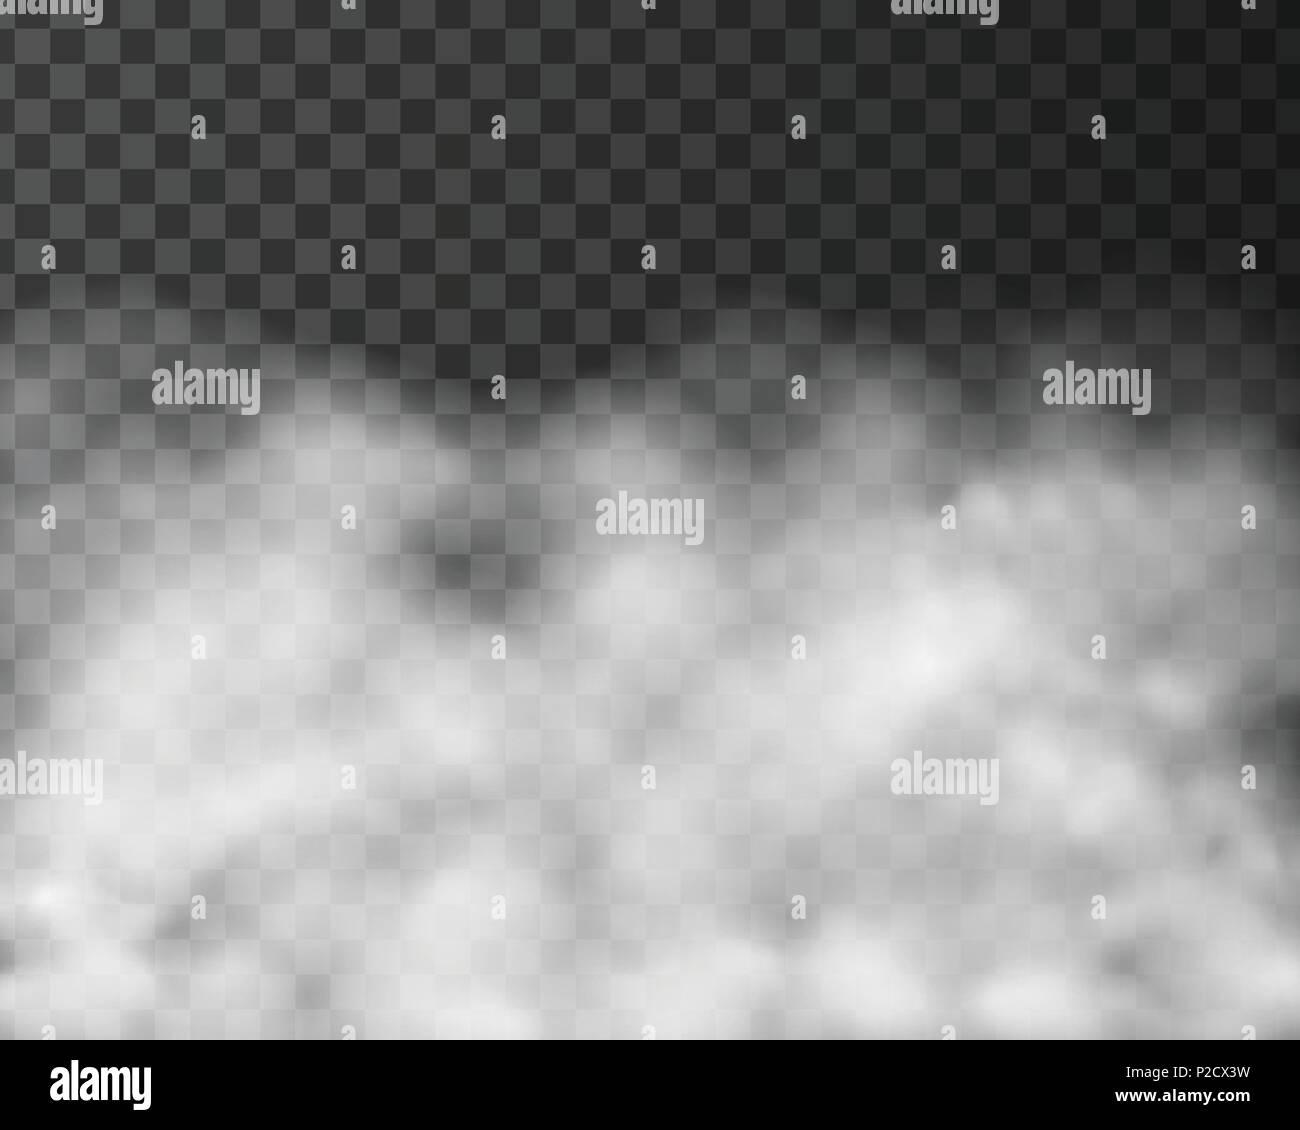 Realistic illustration of smoke or clouds, isolated on transparent background - vector - Stock Vector